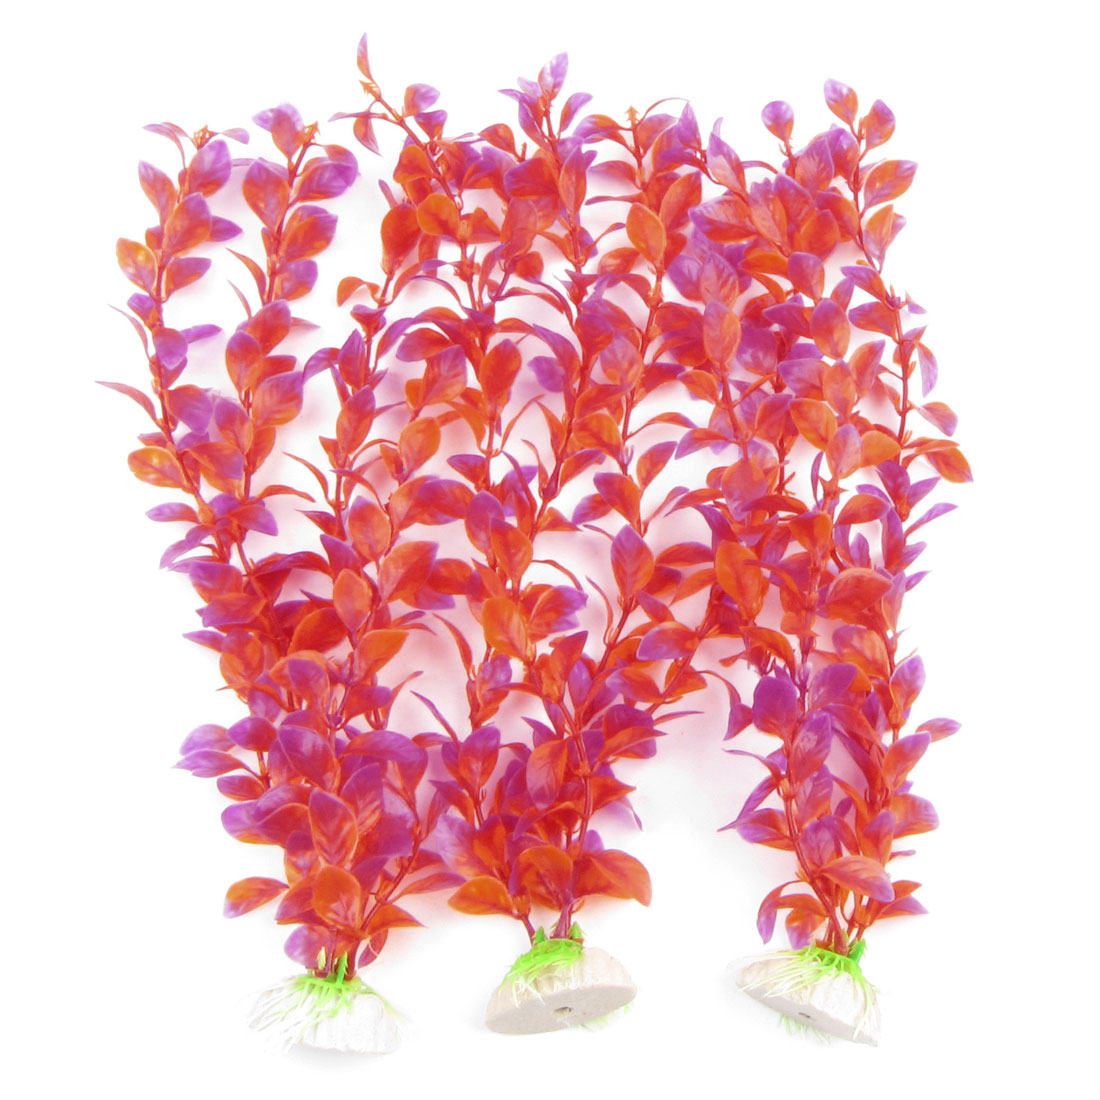 Fish Tank Fuchsia Red Plastic Emulation Aquatic Water Grass 3 Pcs